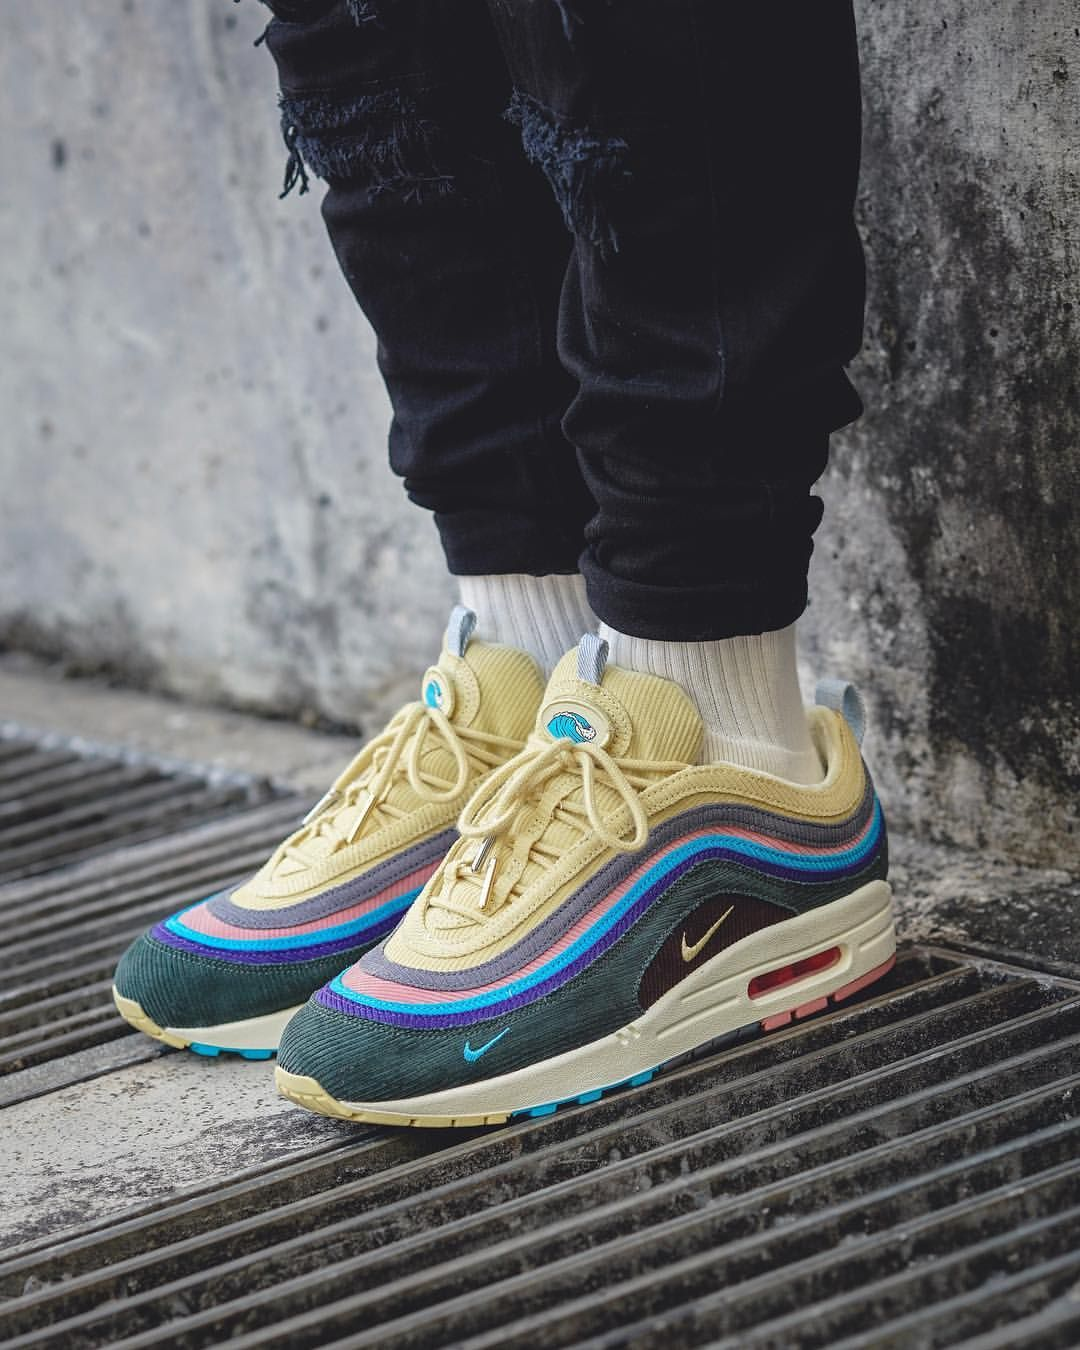 74bf5bab48178f Sean Wotherspoon x Nike Air Max 97 1 - Tap the link to shop on our official  online store! You can also join our affiliate and or rewards programs for  FREE!